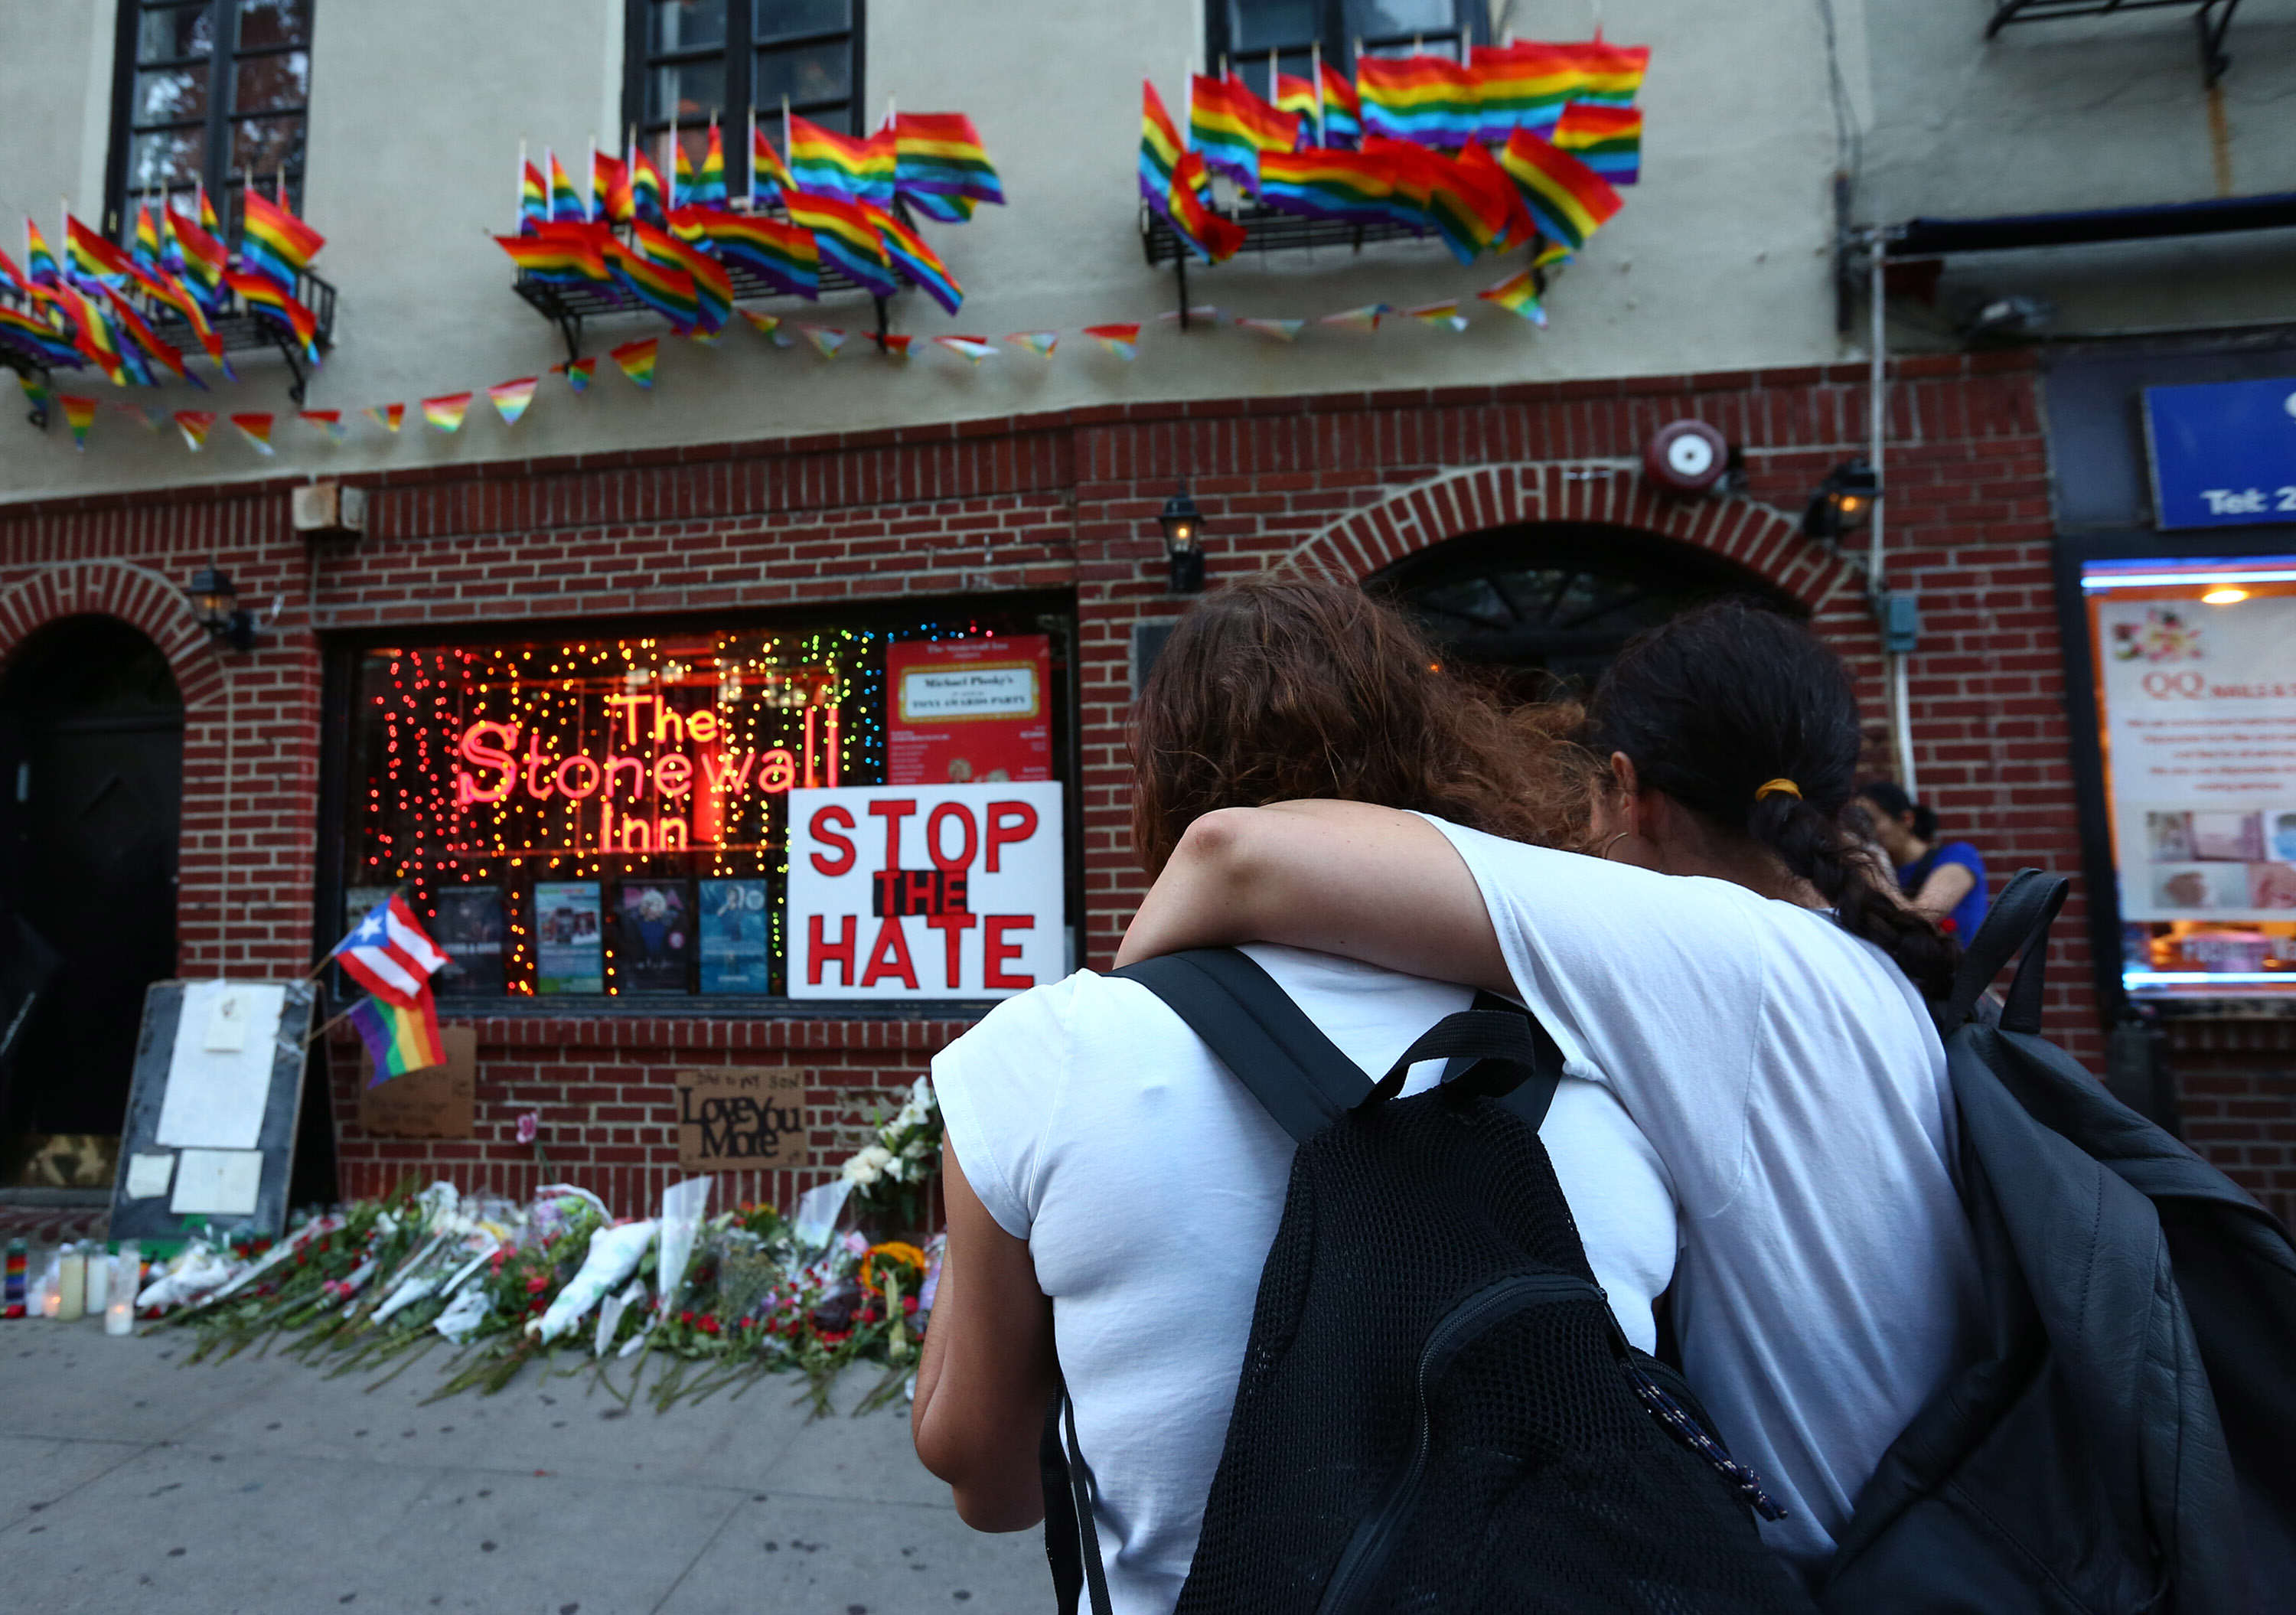 Turkish Newspaper Mocks Orlando Shooting With Homophobic Headline GettyImages 539744148